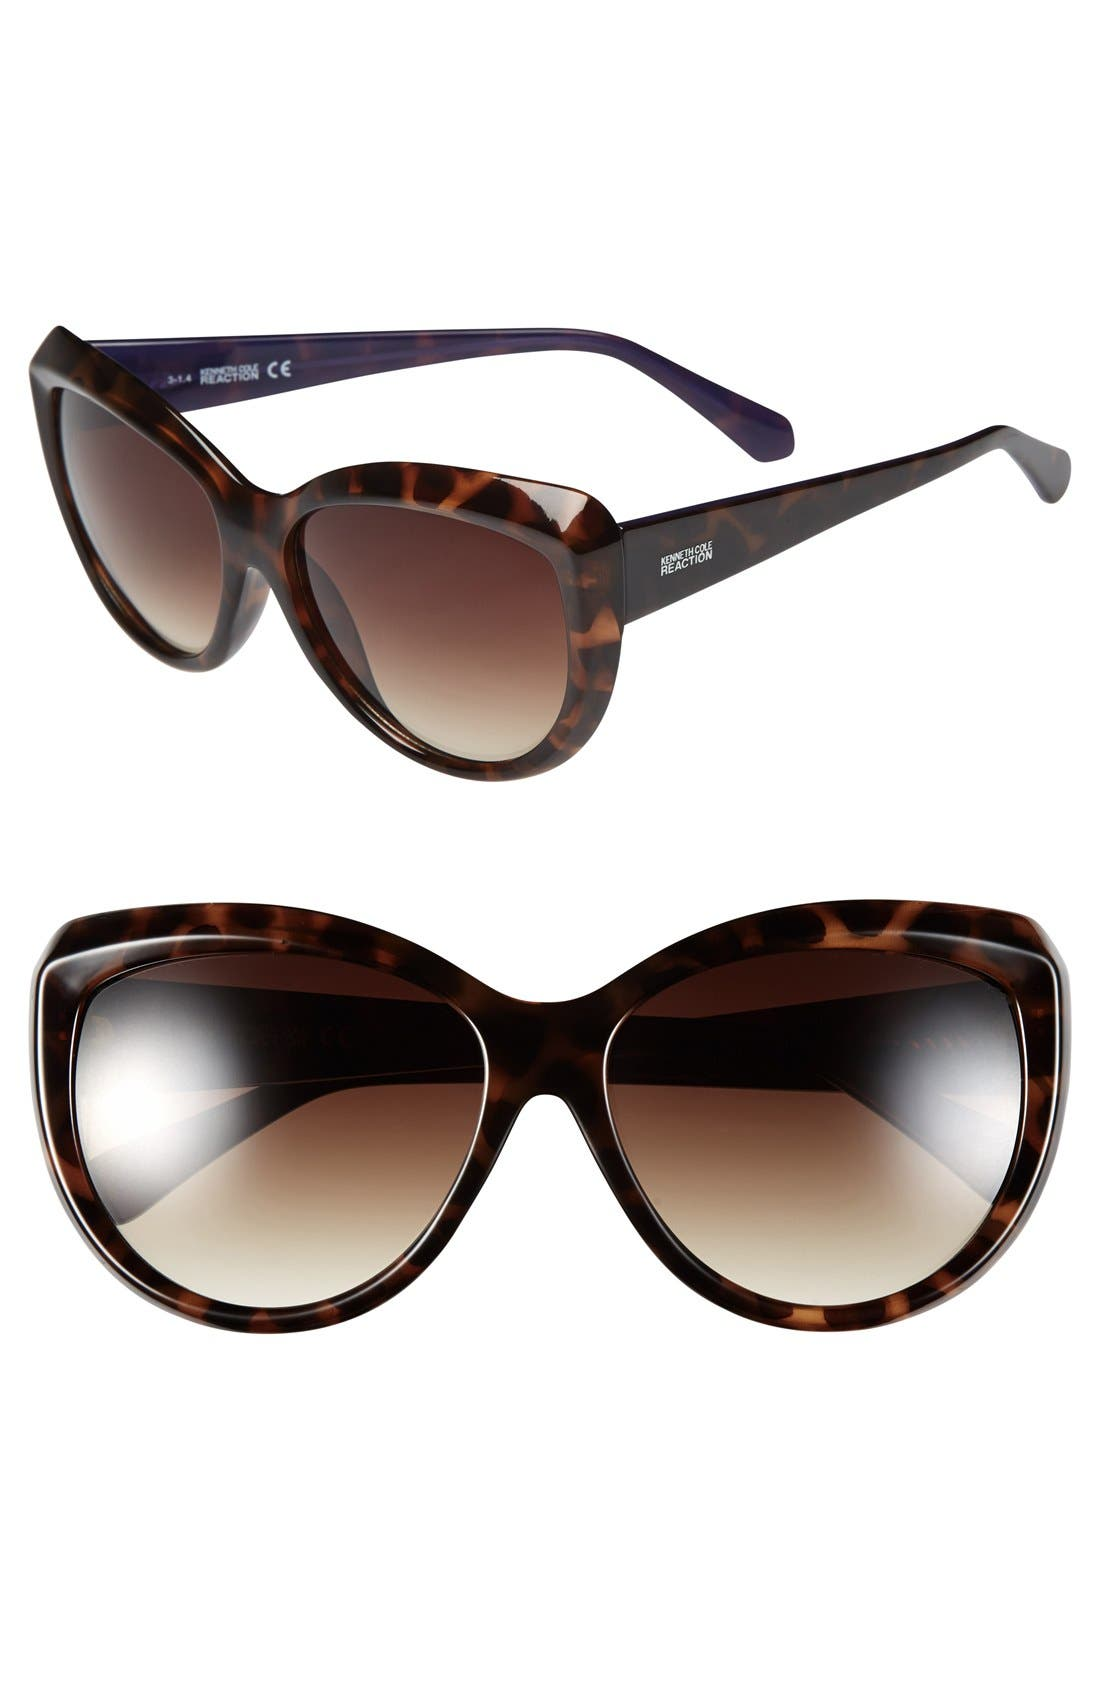 Alternate Image 1 Selected - Kenneth Cole Reaction 59mm Cat Eye Sunglasses